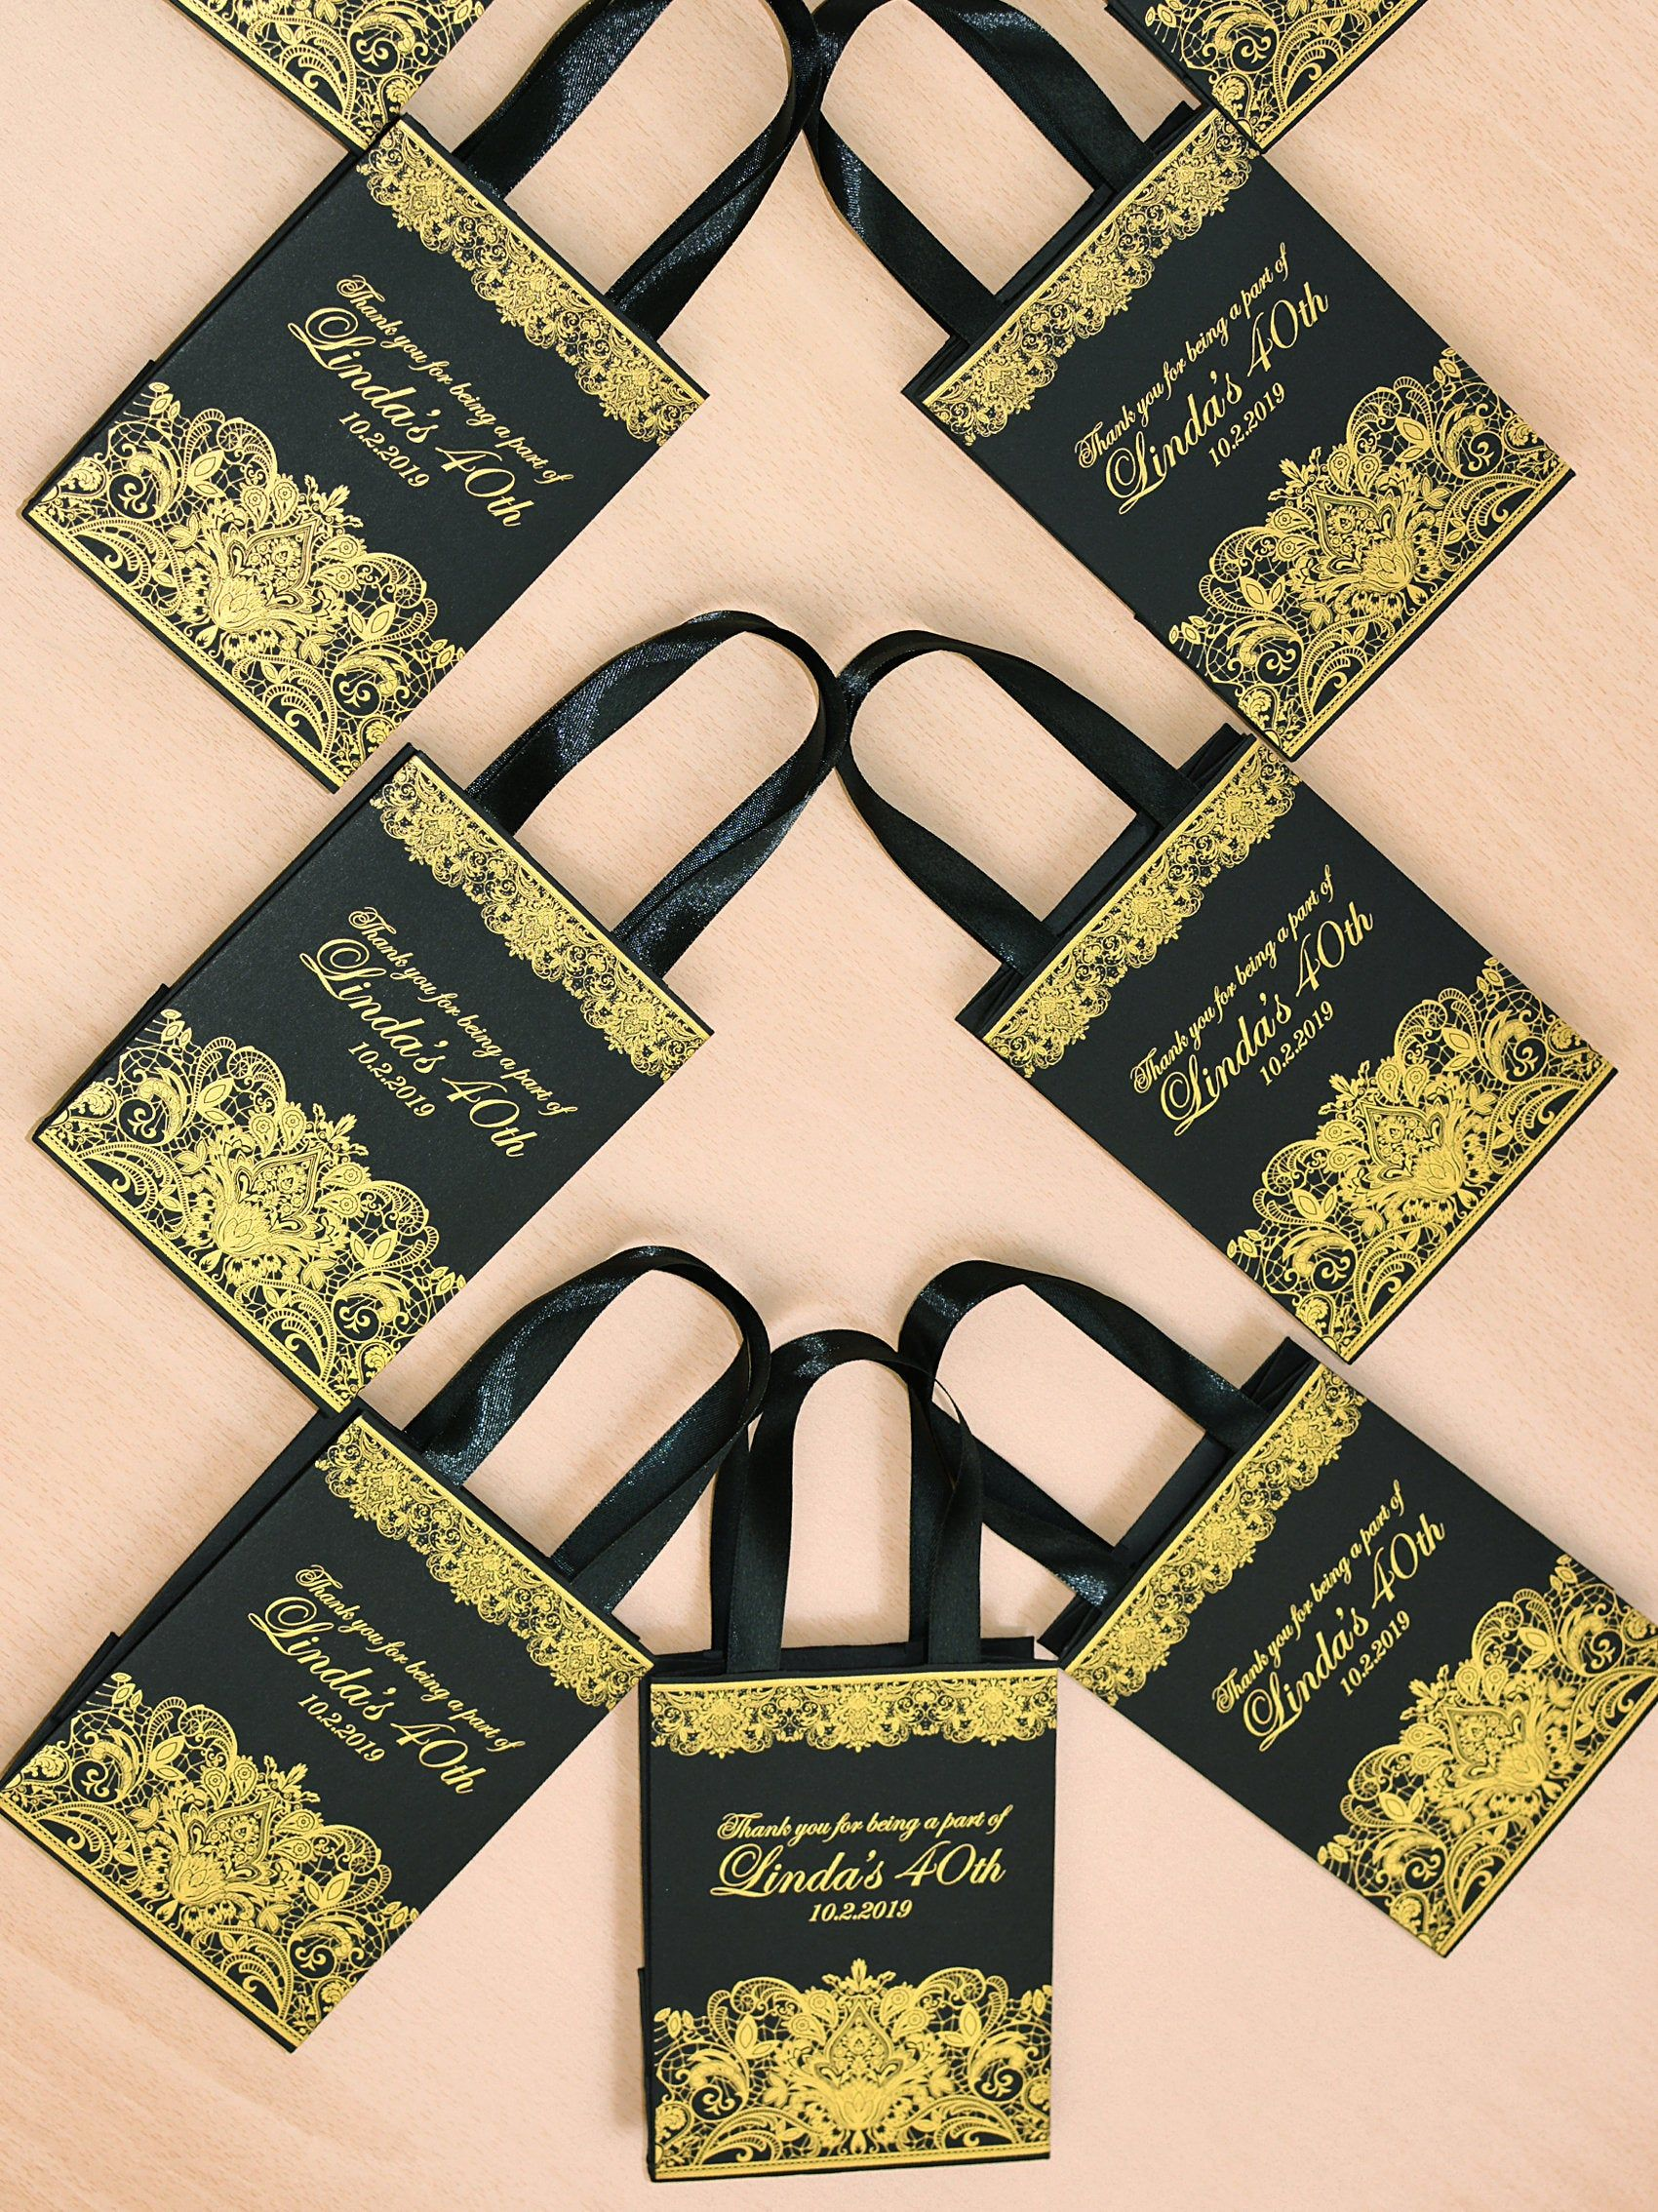 35 Black & Gold Birthday Party gift bags with satin ribbon